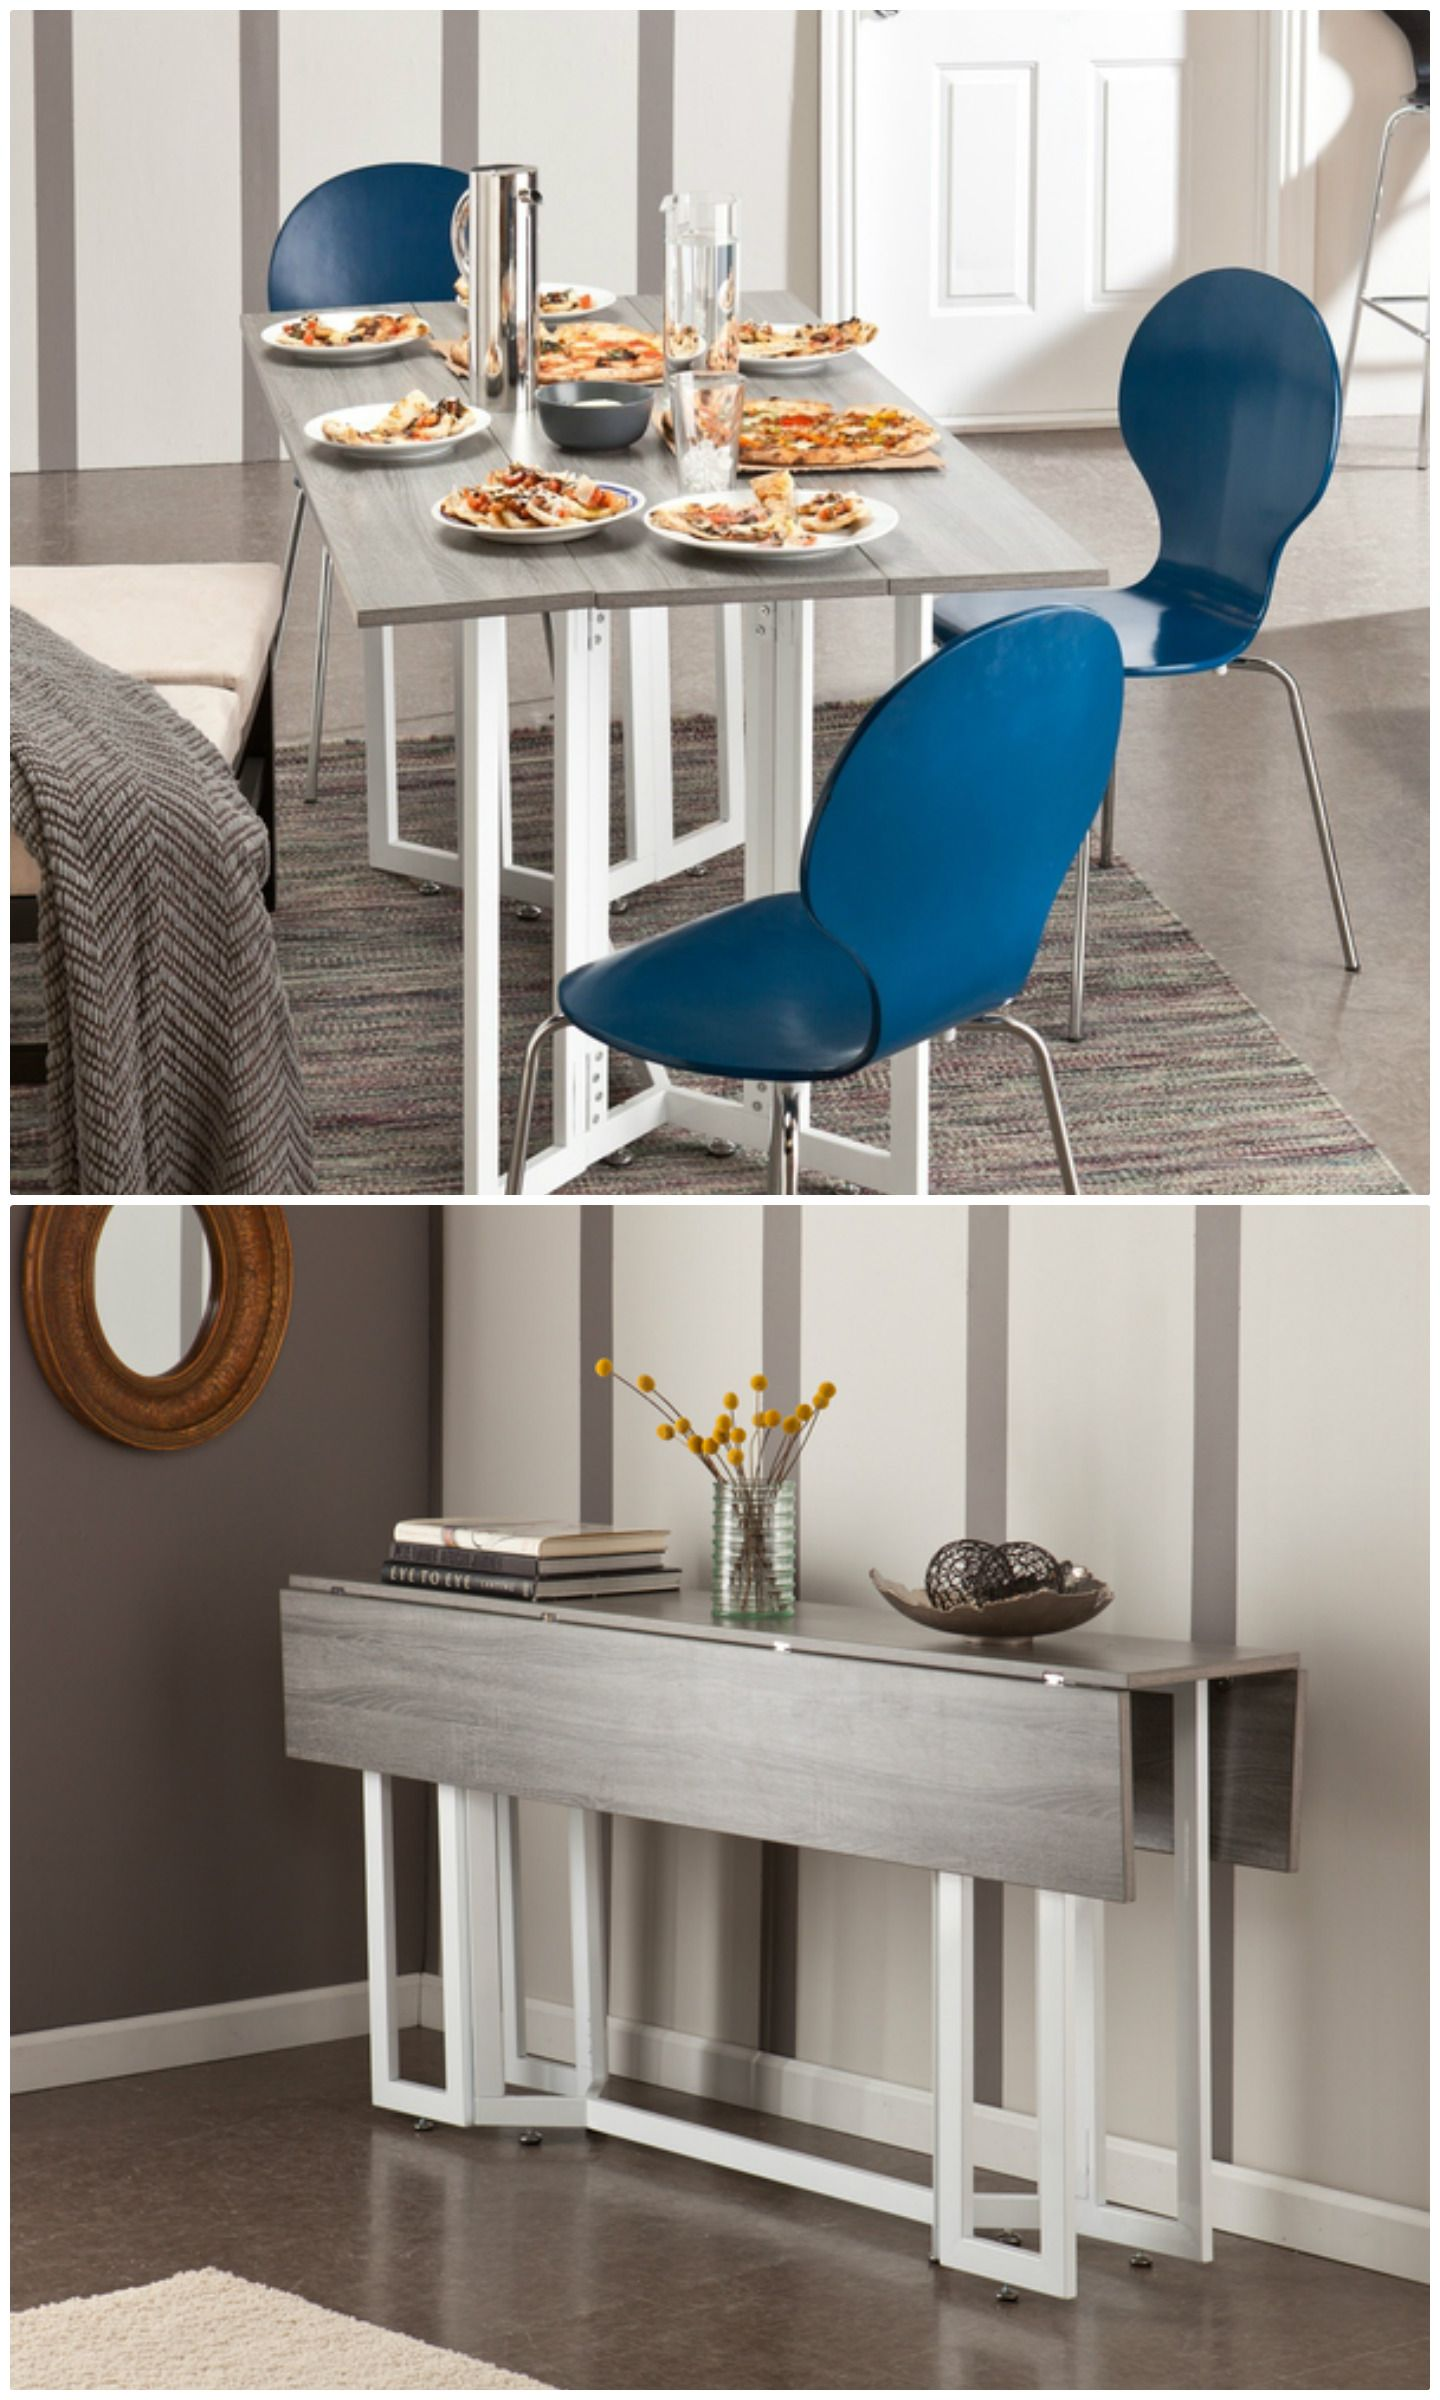 Living In A Shoebox Twenty Dining Tables That Work Great In Small Spaces